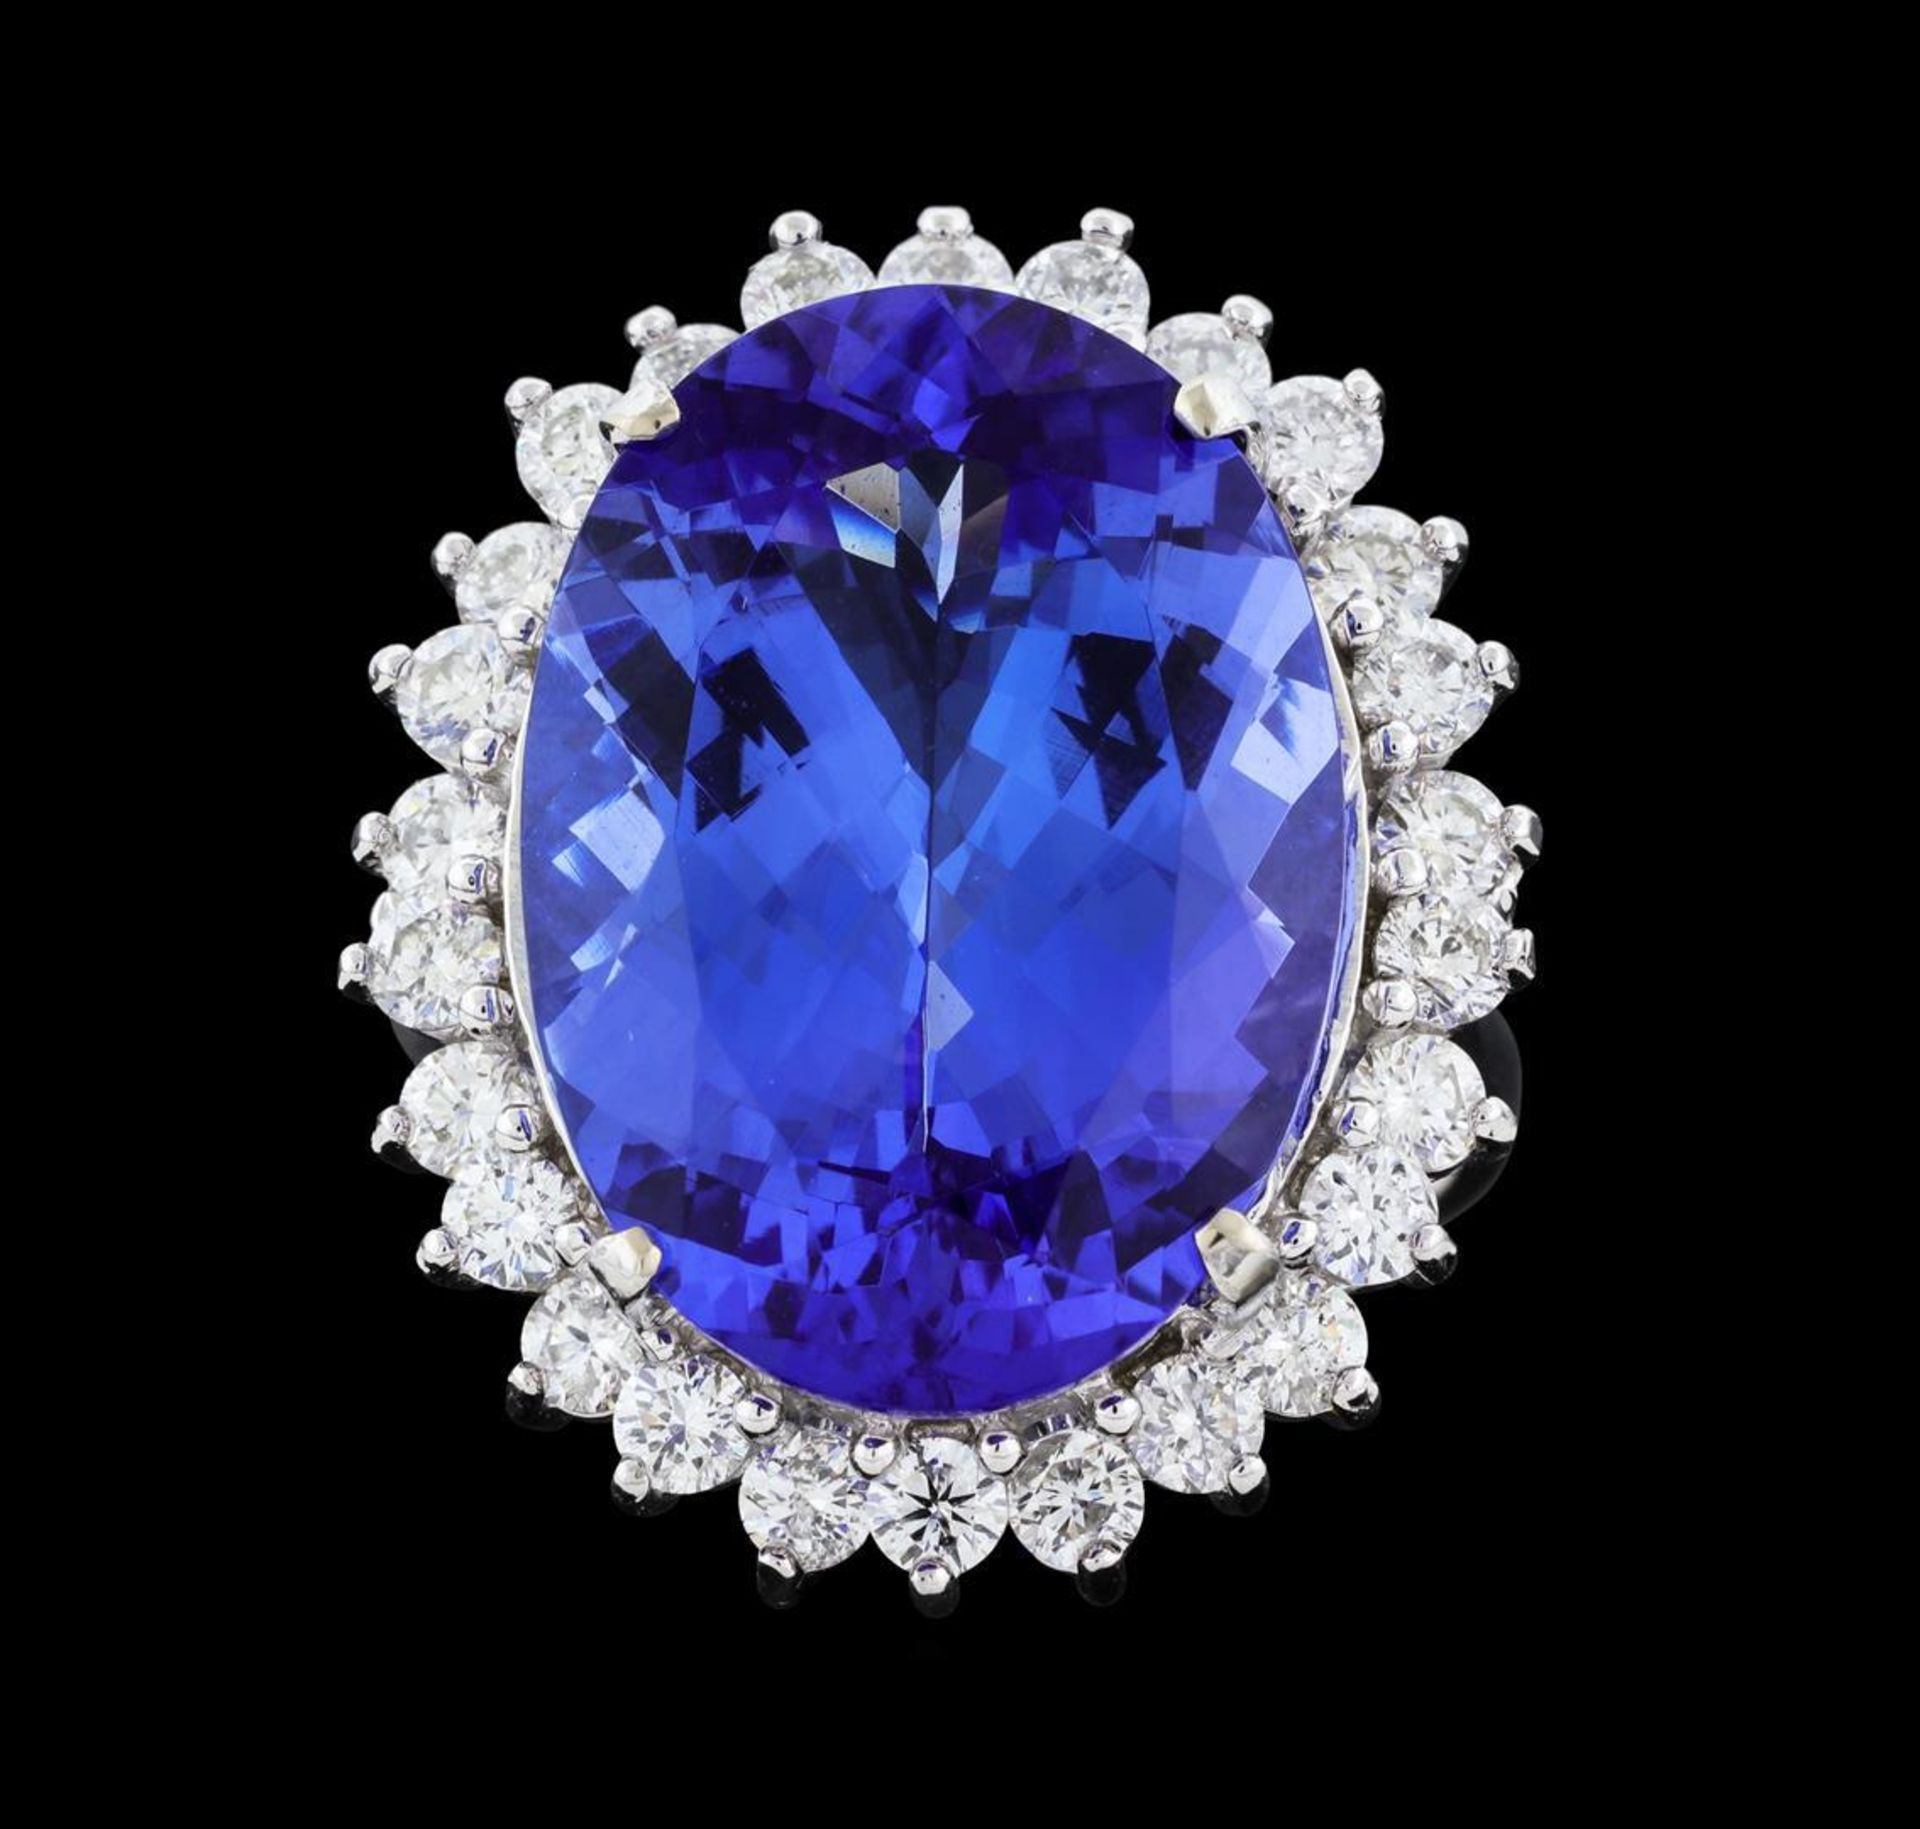 16.10 ctw Tanzanite and Diamond Ring - 14KT White Gold - Image 2 of 5